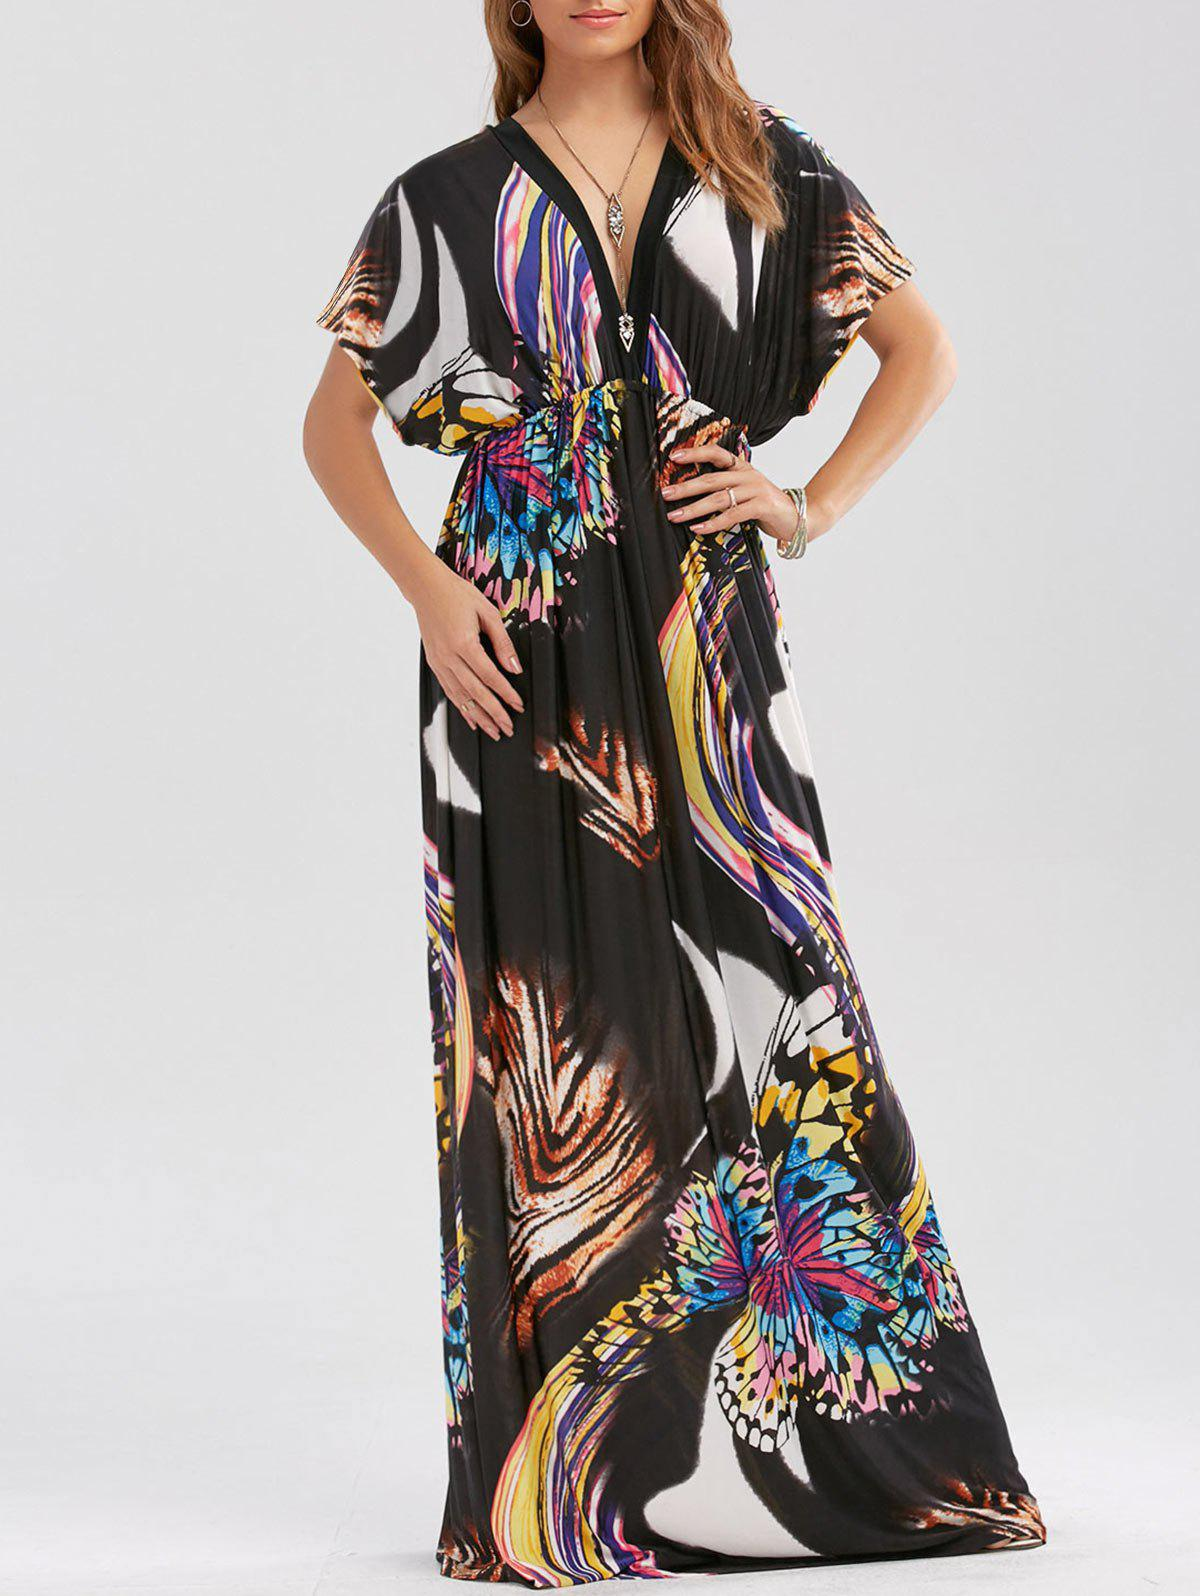 Empire Waist Butterfly Print Maxi Dress - BLACK XL